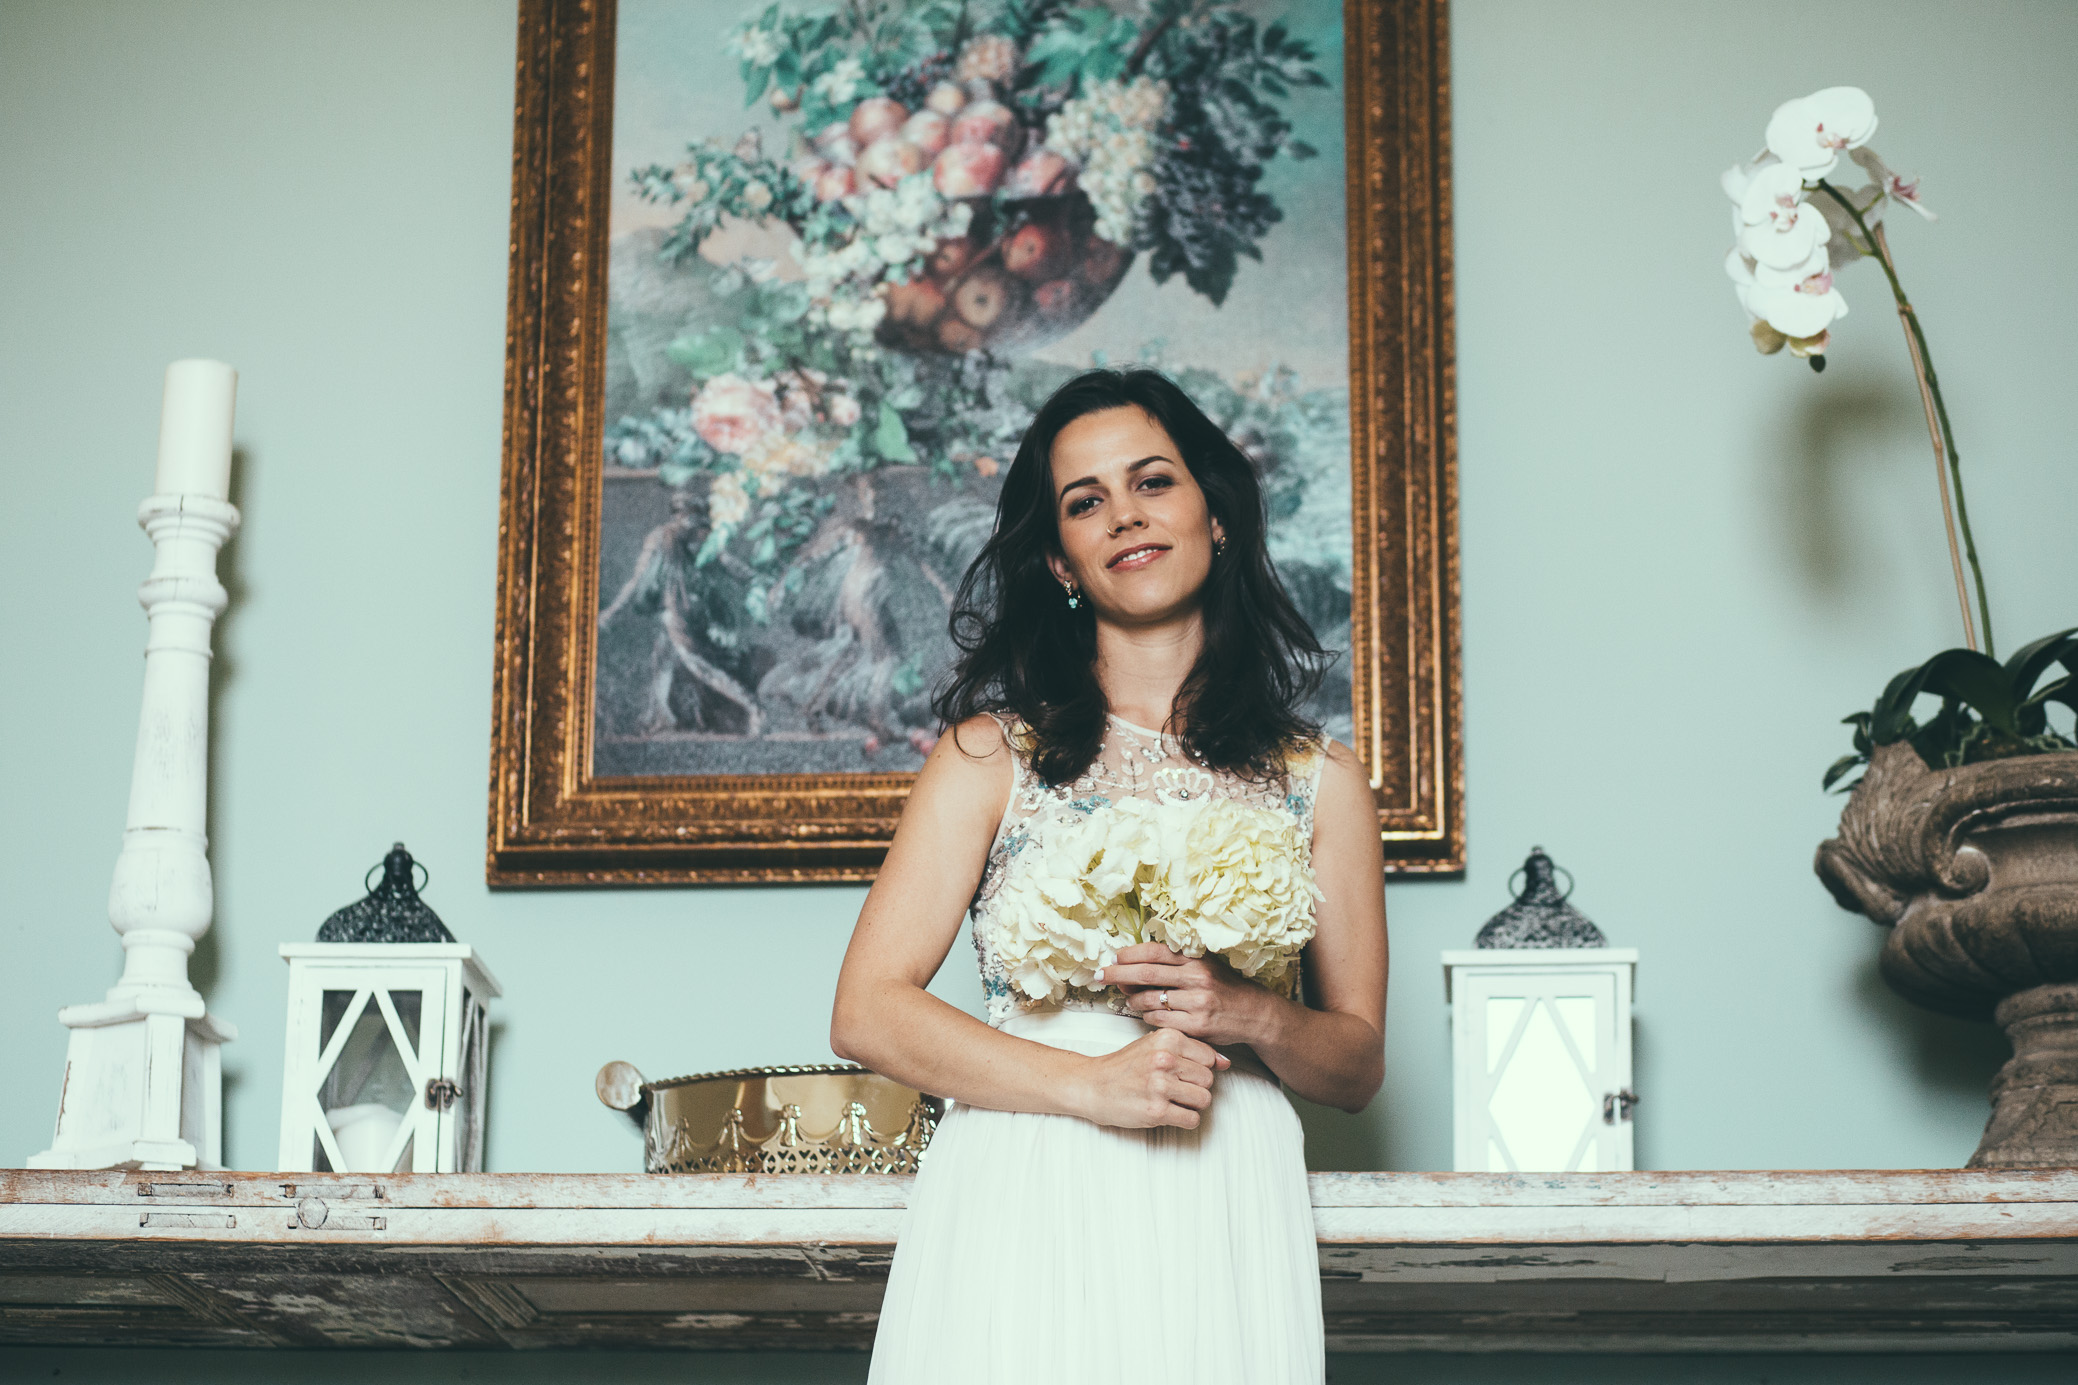 Bridal photography at The Drish House in Tuscaloosa, Alabama by David A. Smith of DSmithImages Wedding Photography, Portraits, and Events in Birmingham, Alabama